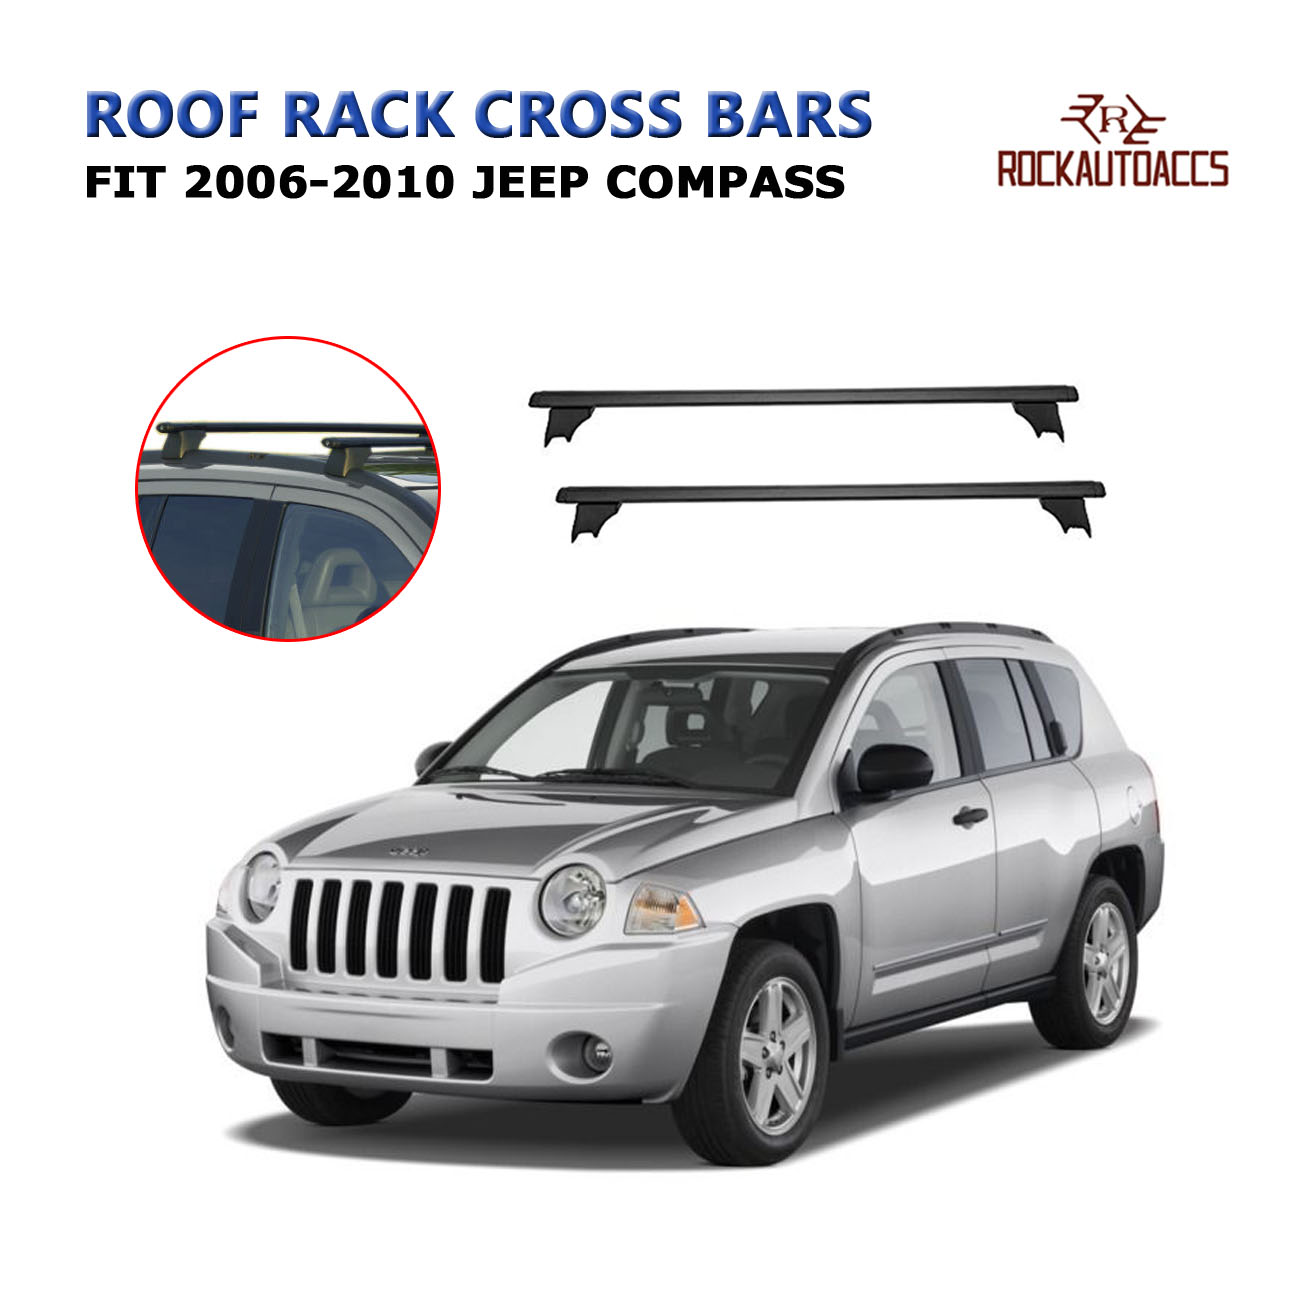 rokiotoex roof rack crossbars roof rail cross bars fit 2006 2007 2008 2009 2010 jeep compass rooftop side rails cargo bag luggage carrier aluminum